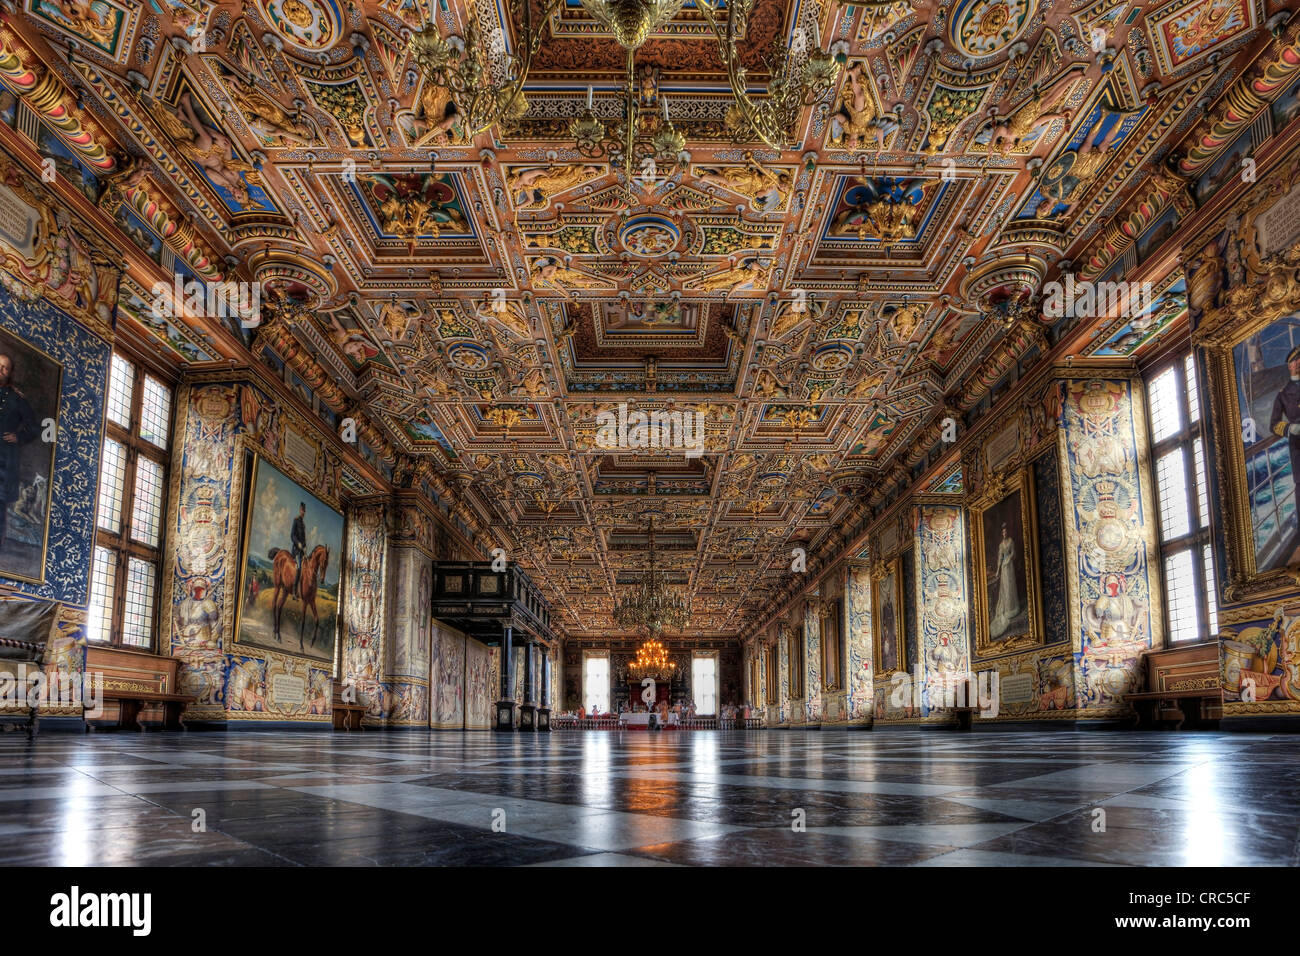 The Great Hall at Frederiksborg Castle, Hillerød, Denmark, Europe - Stock Image